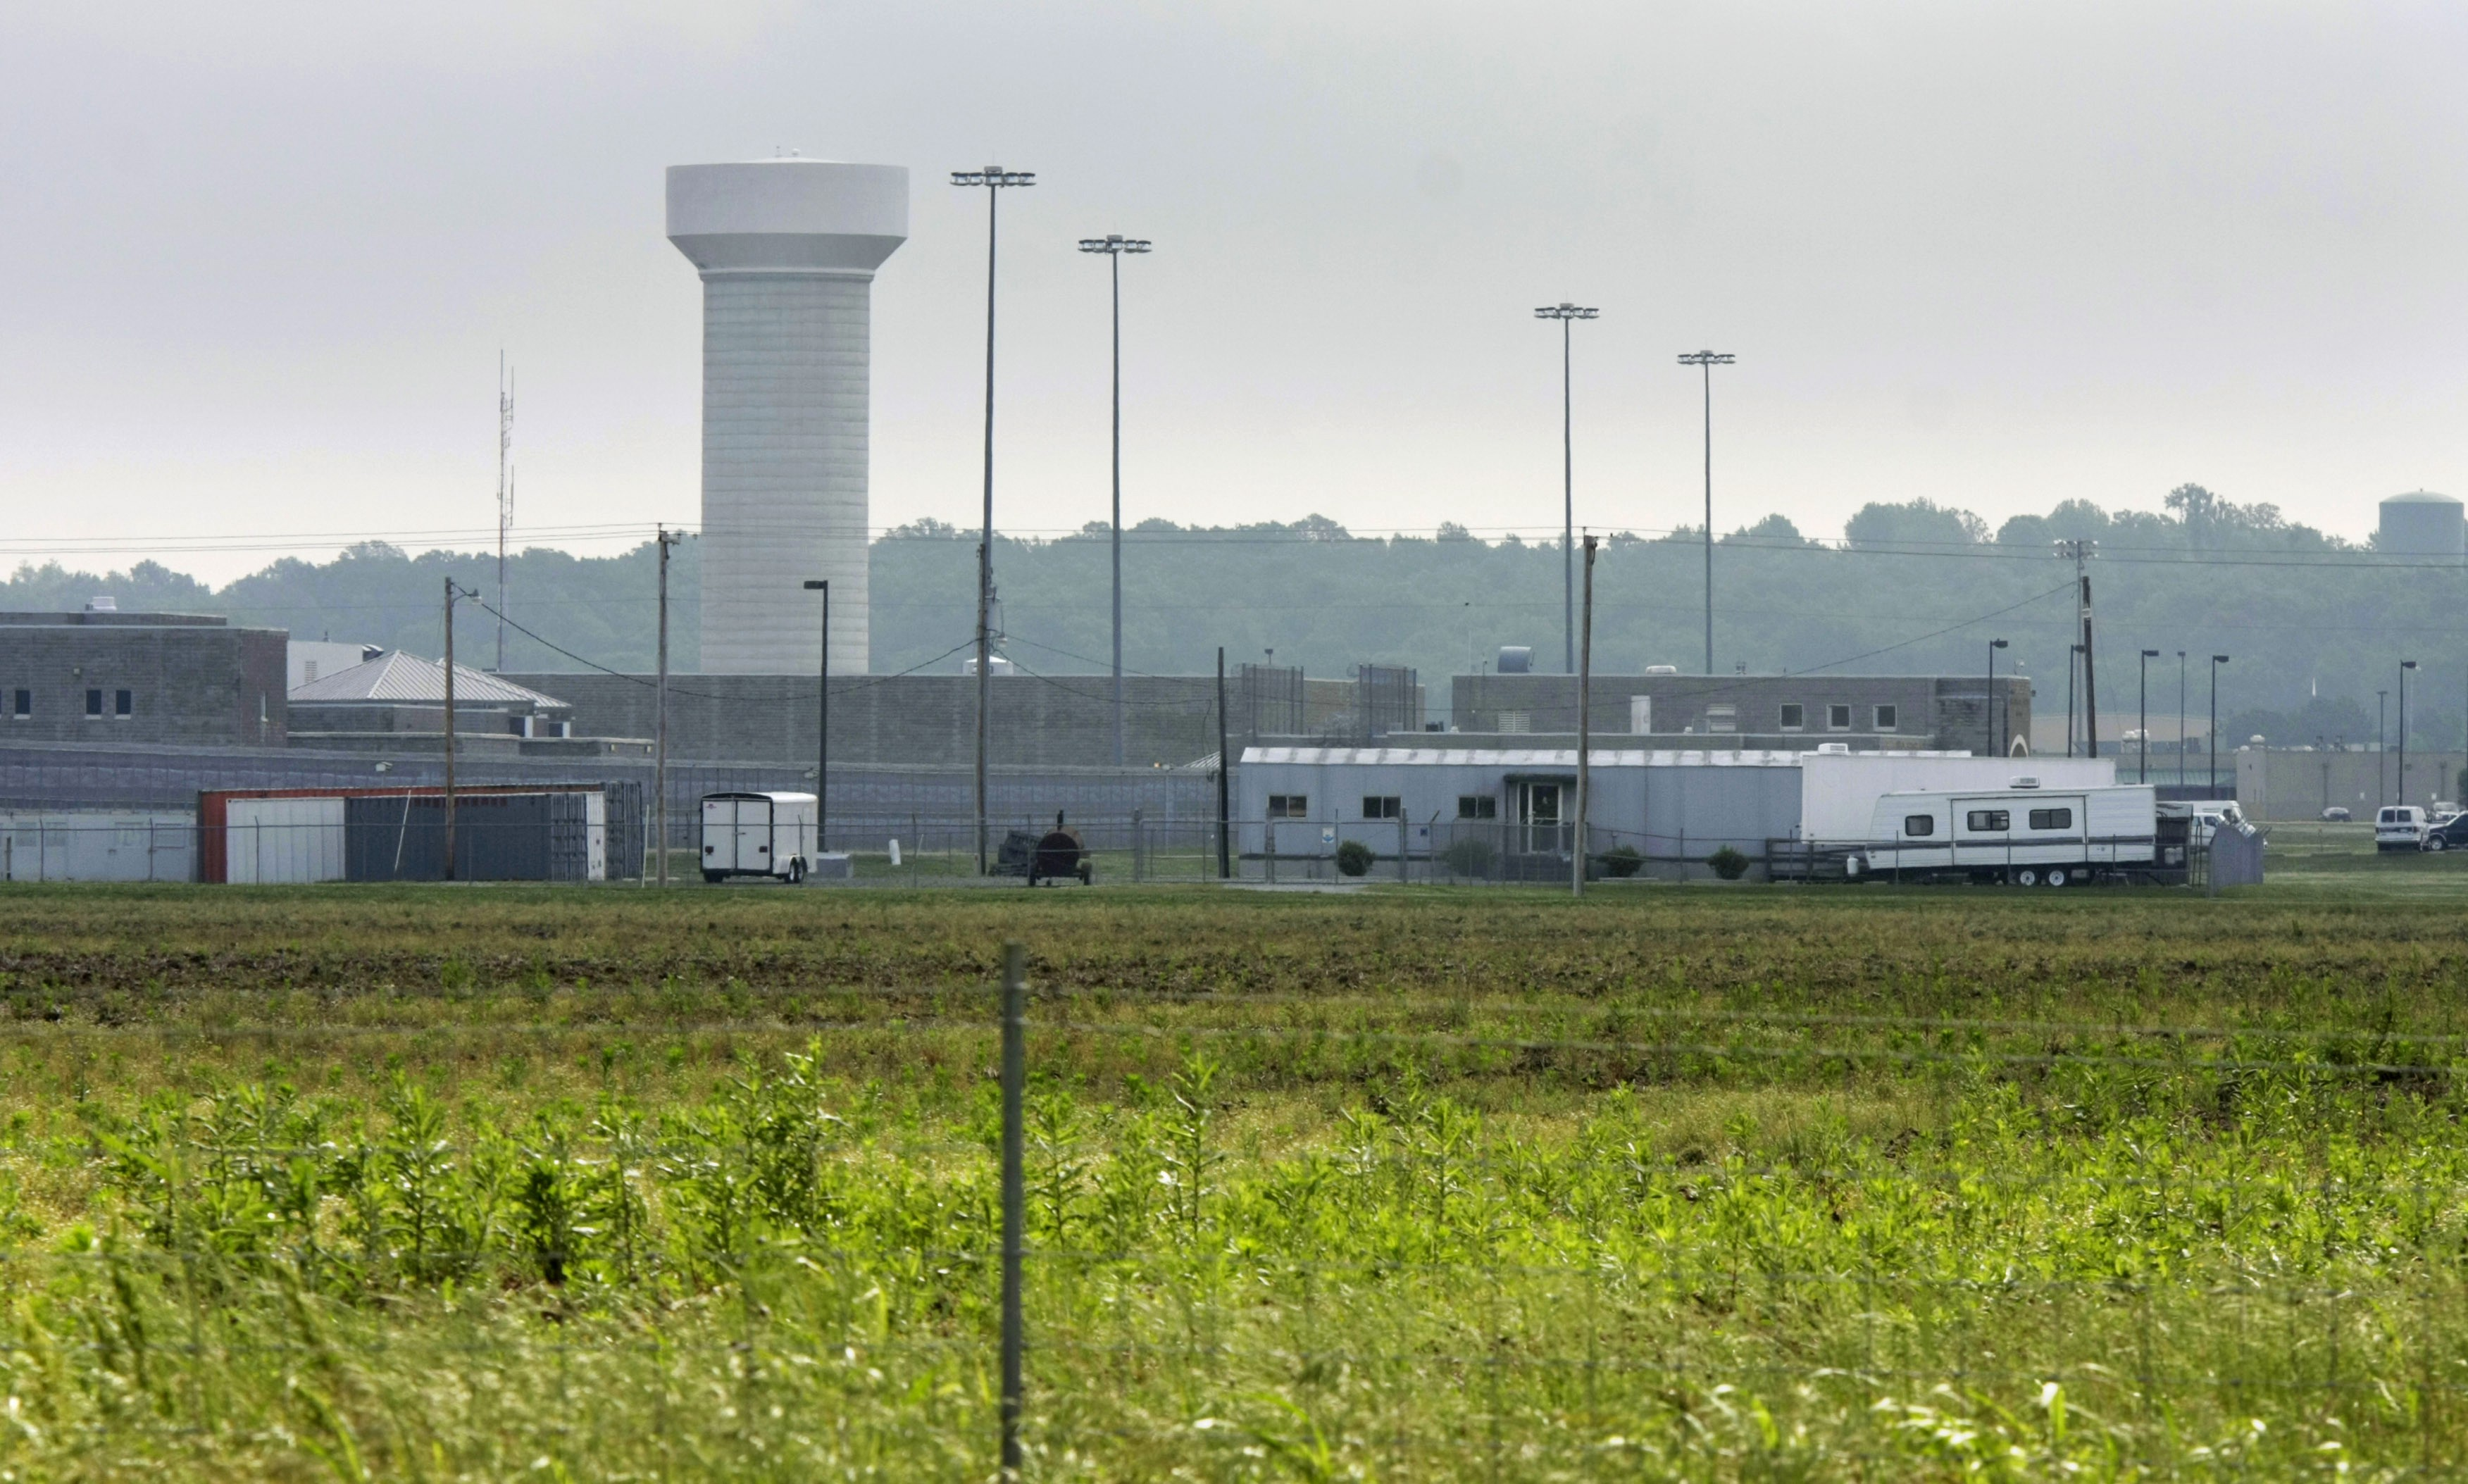 In small town America, sometimes prisons are the best bet